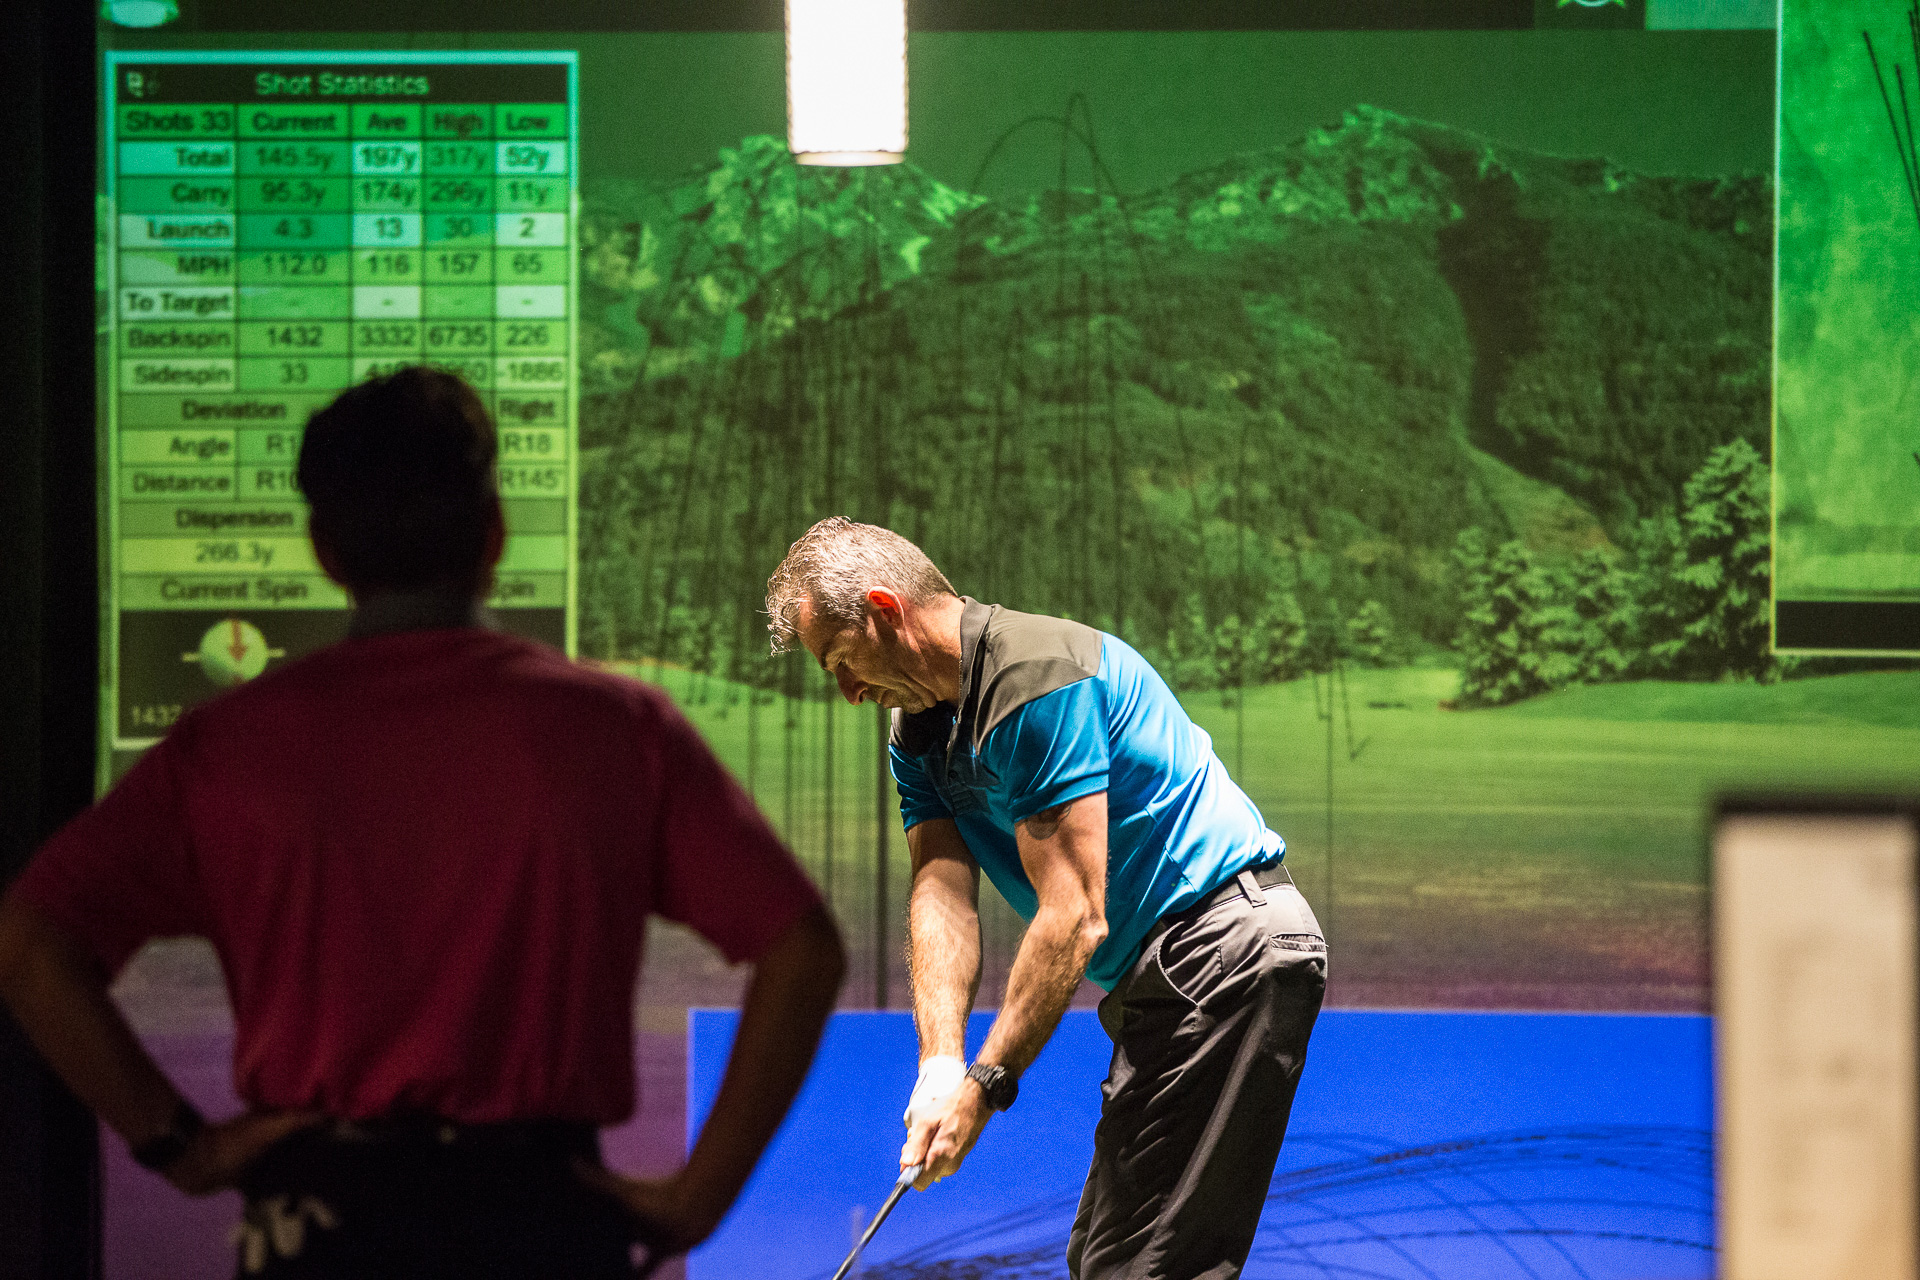 Golf O Max à Boucherville - Simulateur de golf virtuel